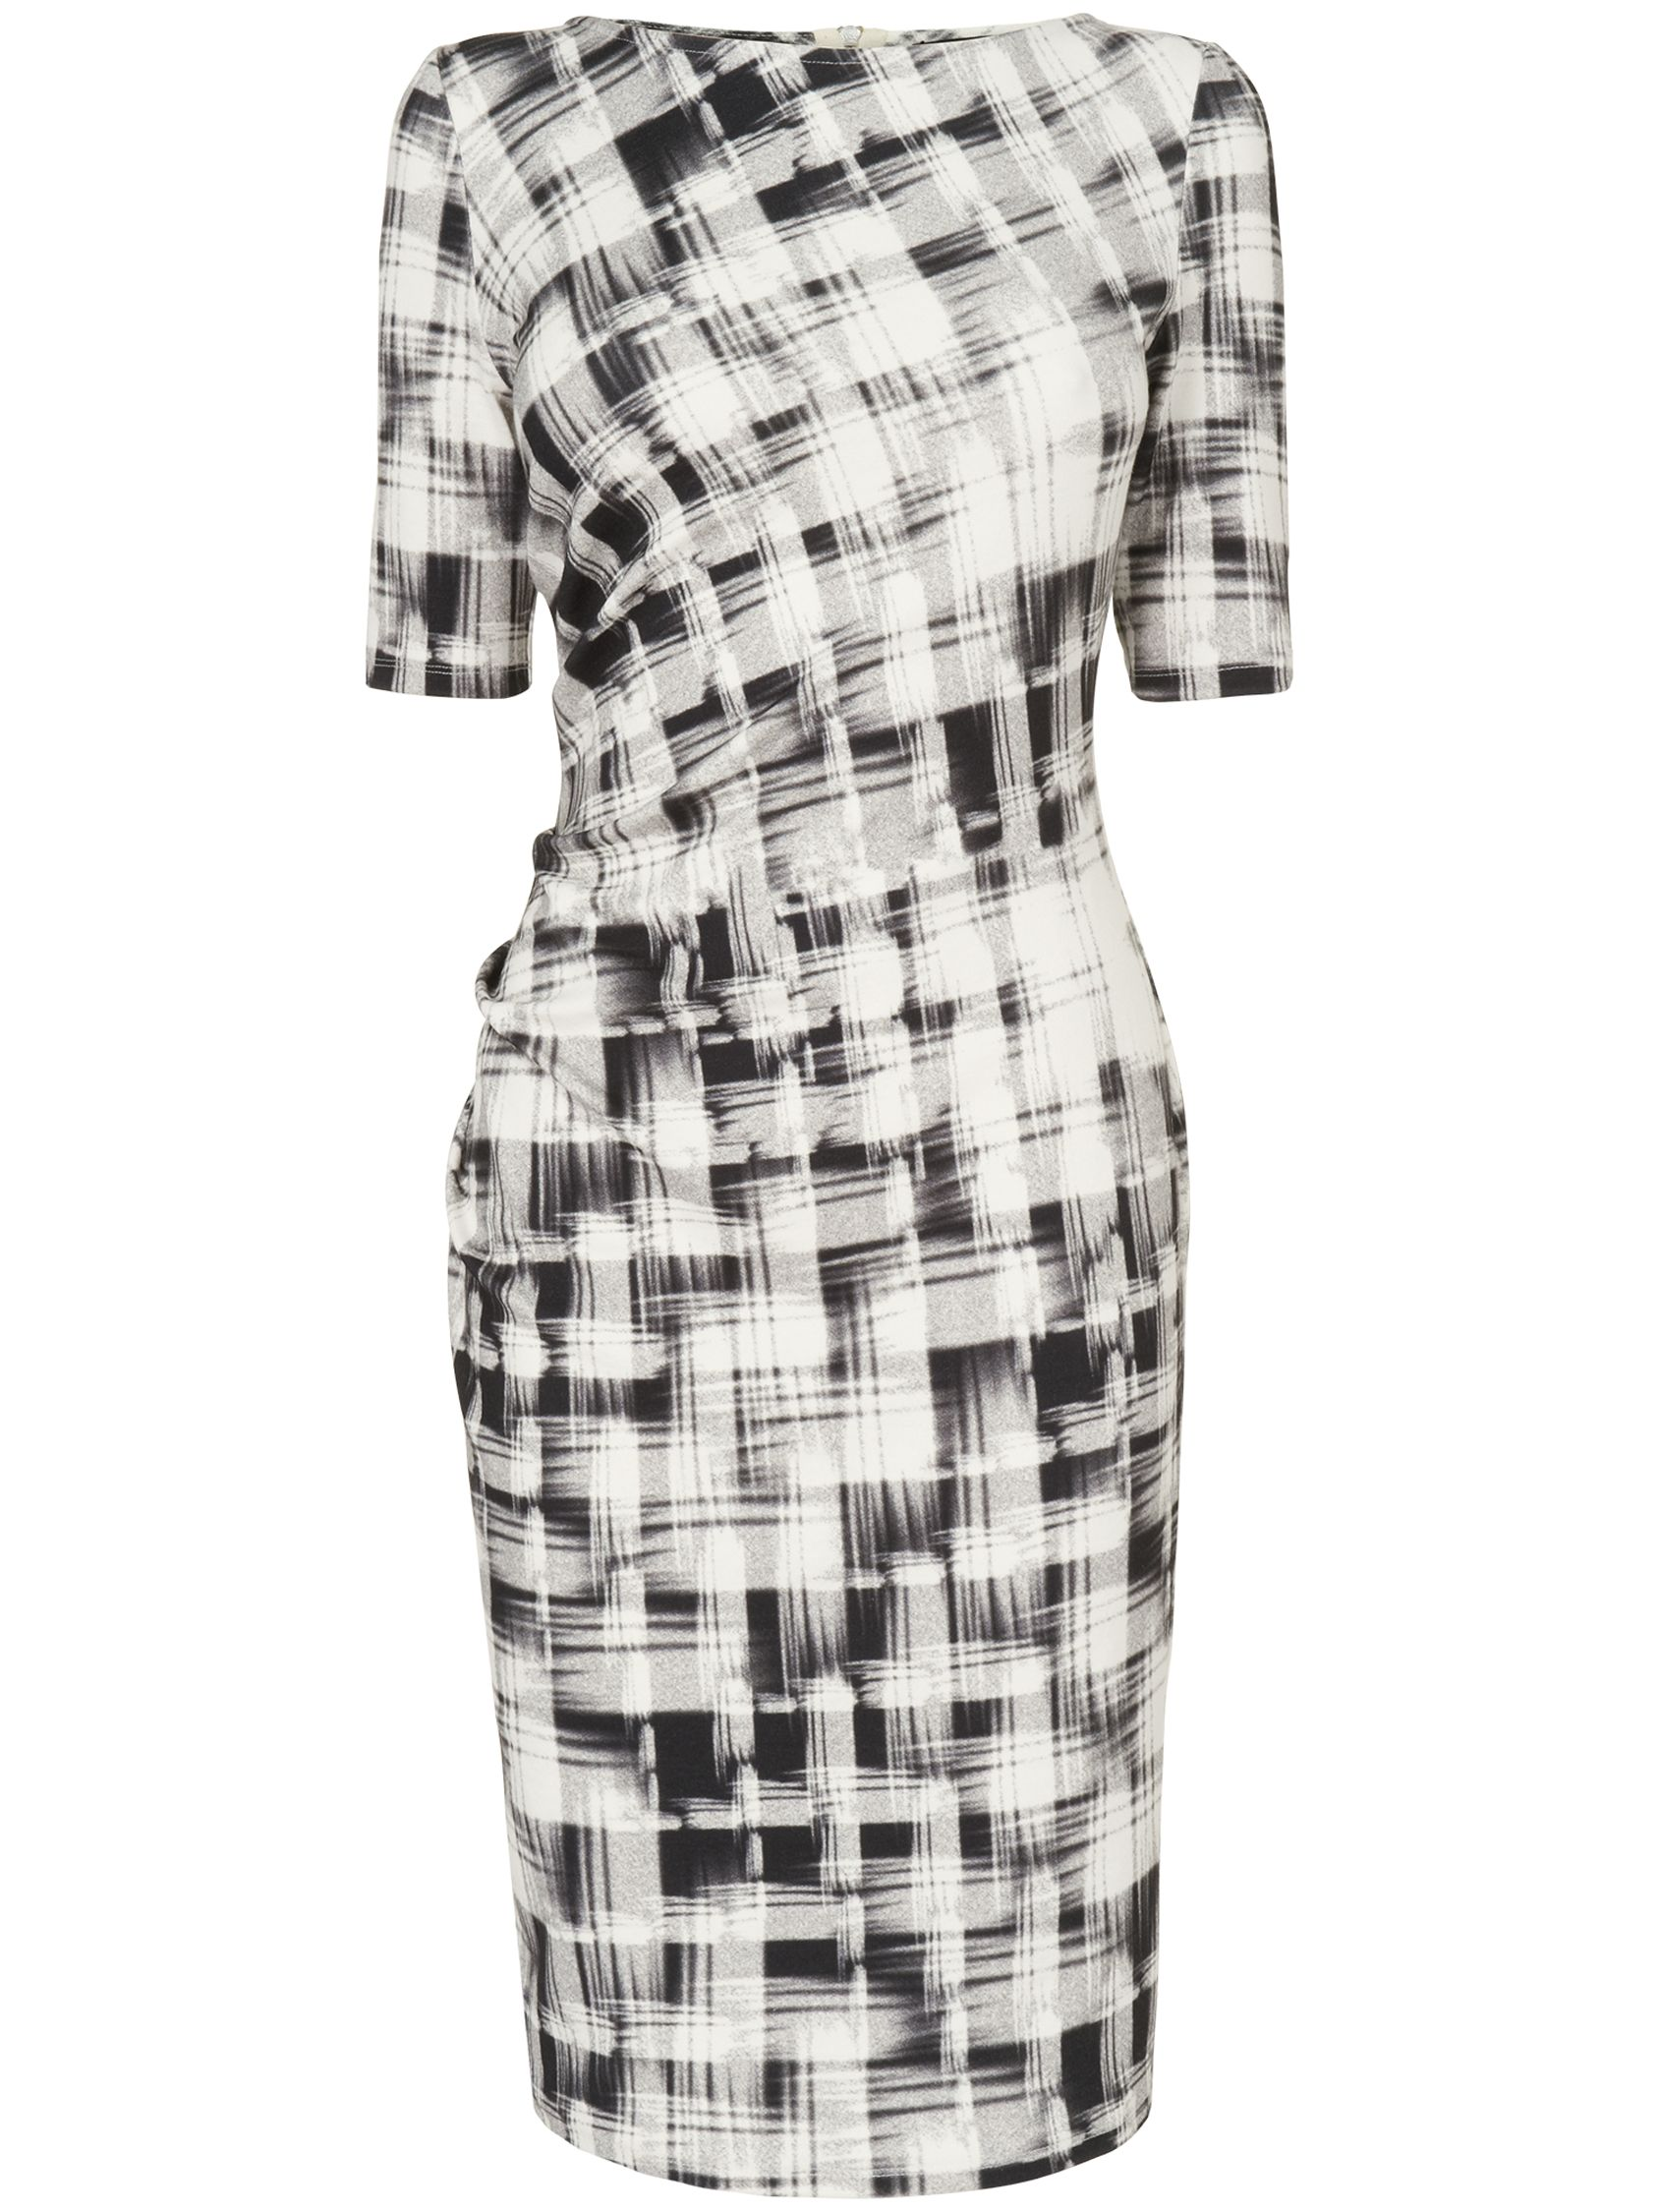 phase eight caley check dress ivory/black, phase, eight, caley, check, dress, ivory/black, phase eight, 12|18, clearance, womenswear offers, womens dresses offers, women, womens dresses, special offers, 1609255